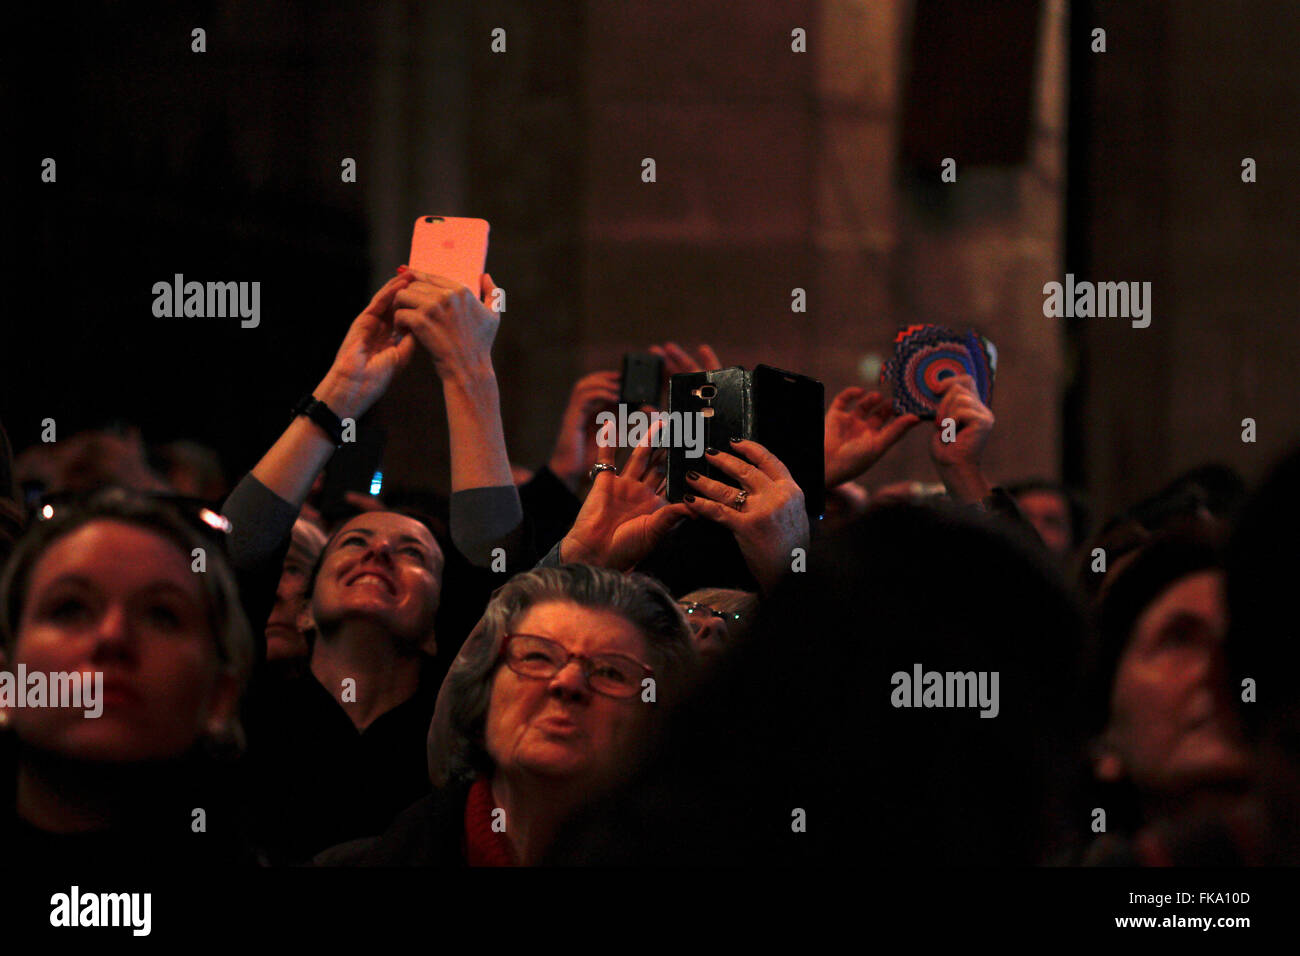 Palma de Majorca, Spain - February 02, 2016. People taking pictures in the spectacle of cathedral. - Stock Image